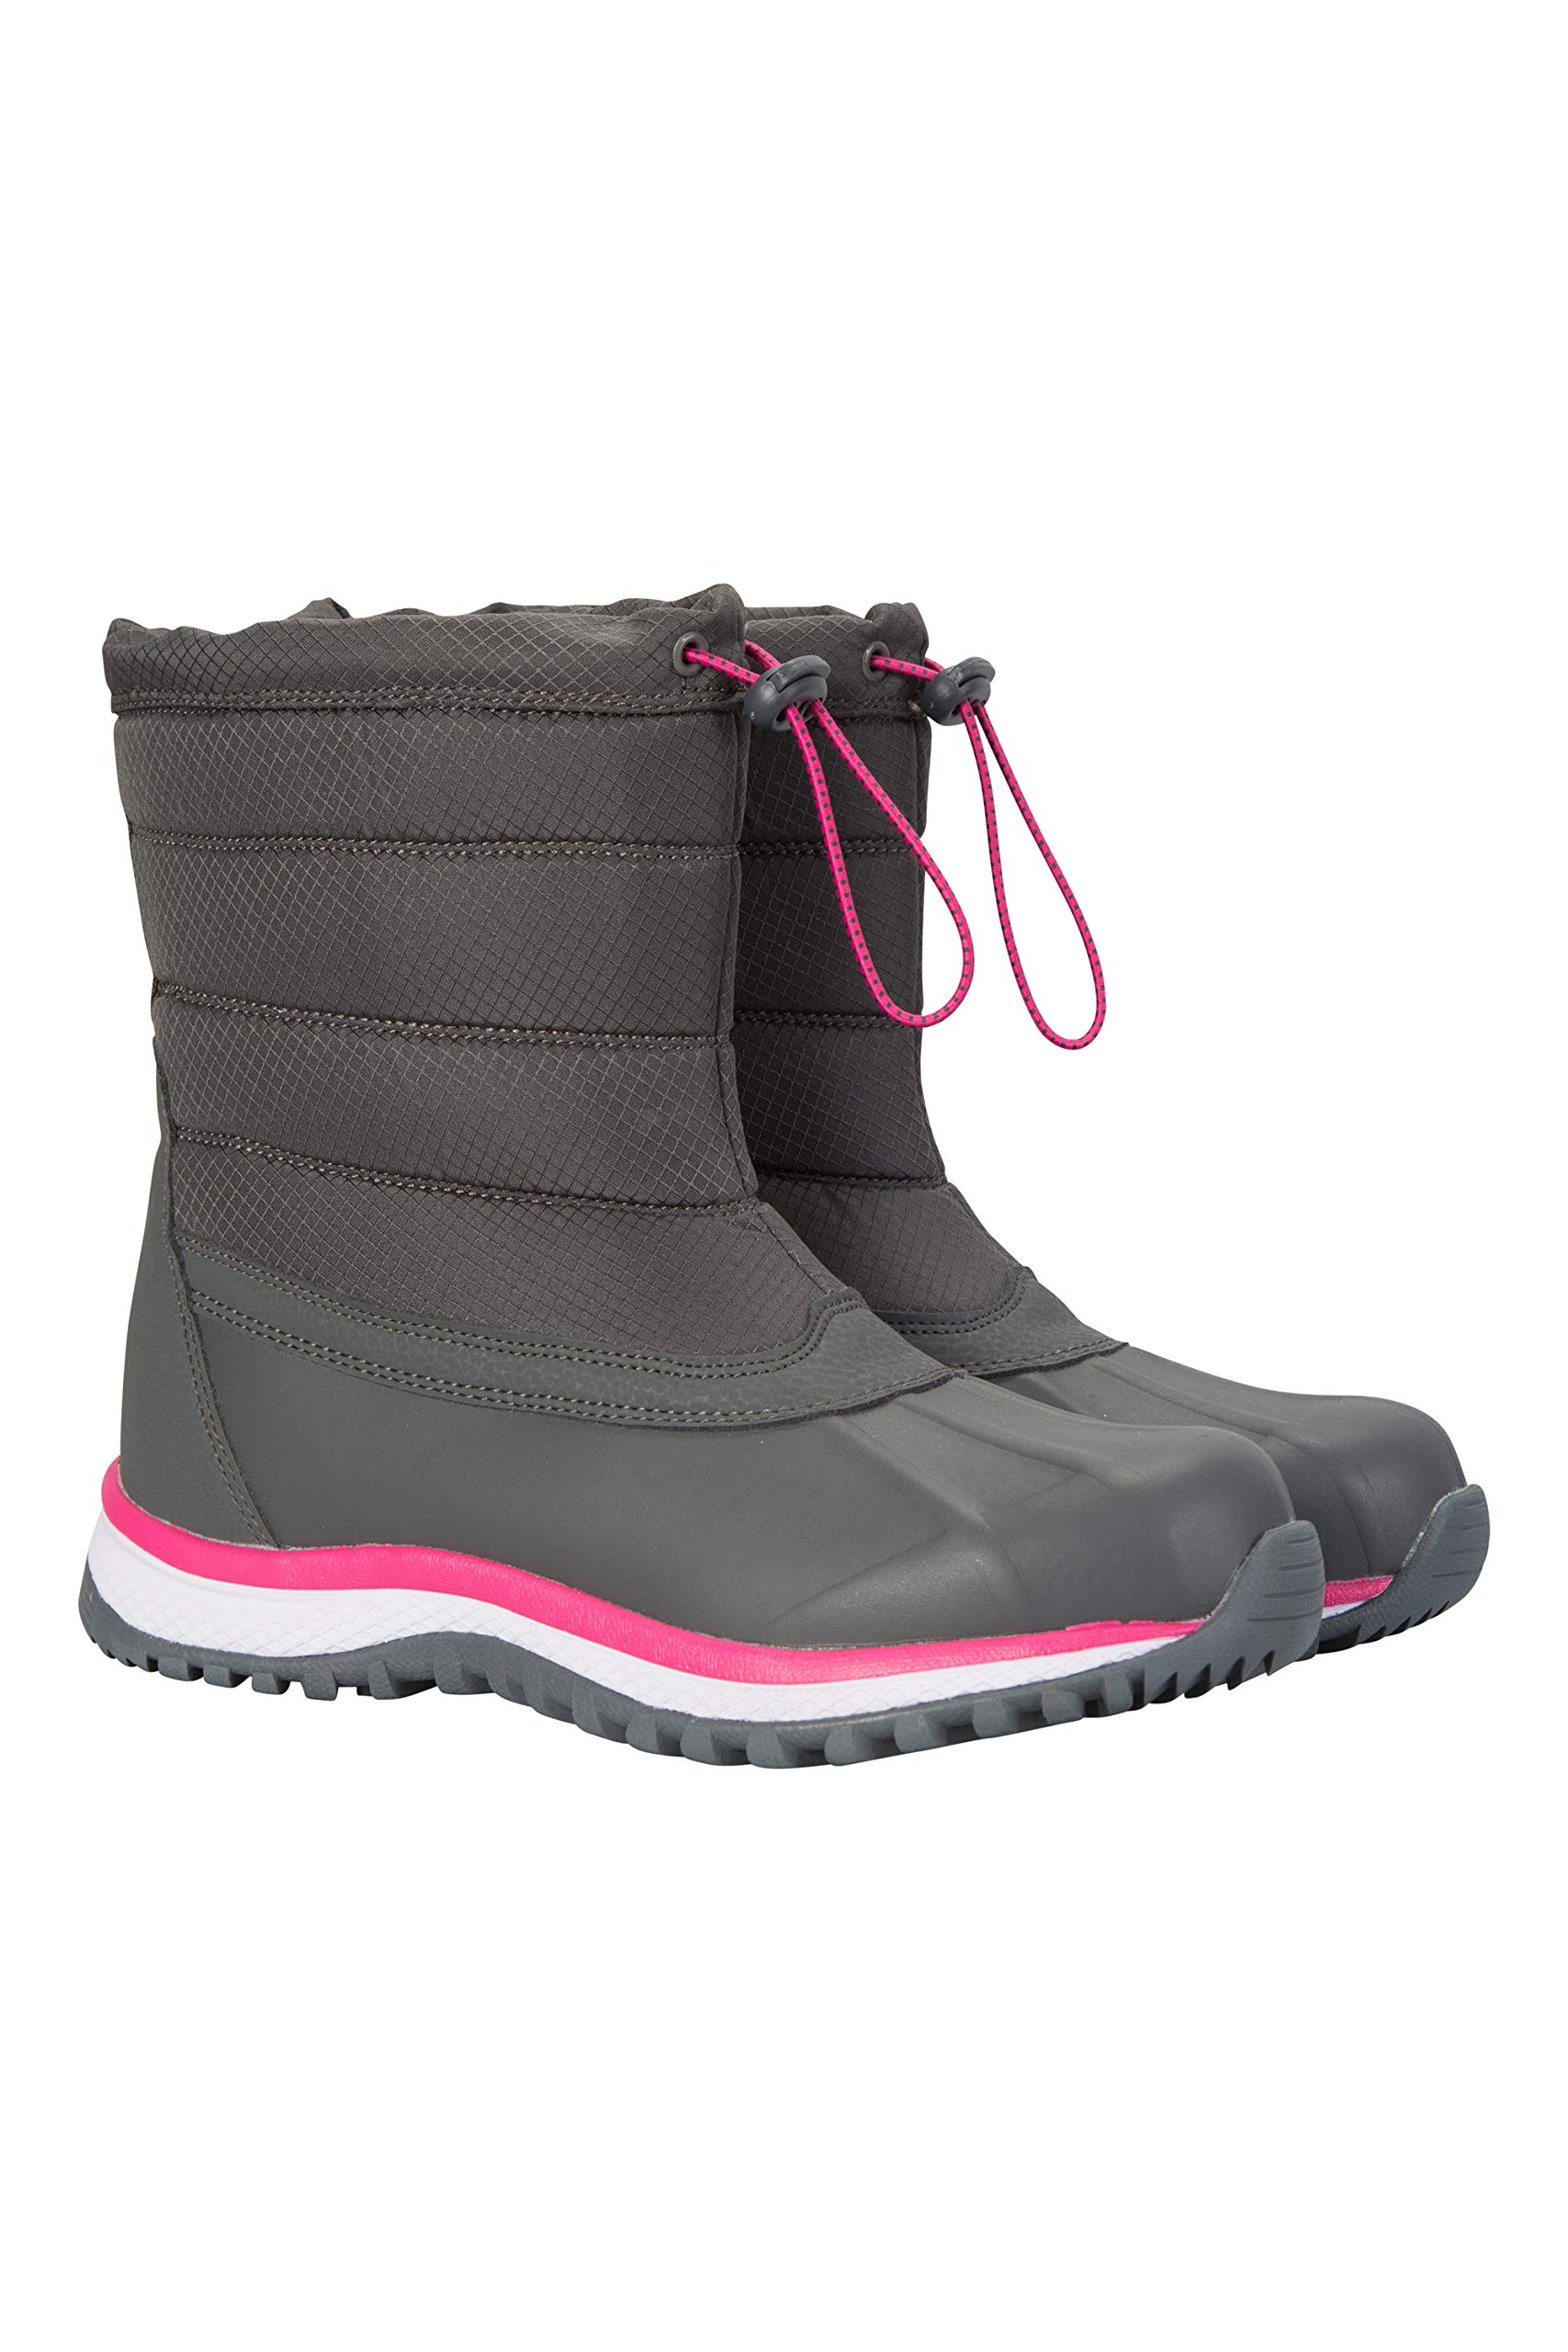 Mountain Warehouse Glacier Womens Snow Boots - Pull On Winter Boots Grey 9 M US Women